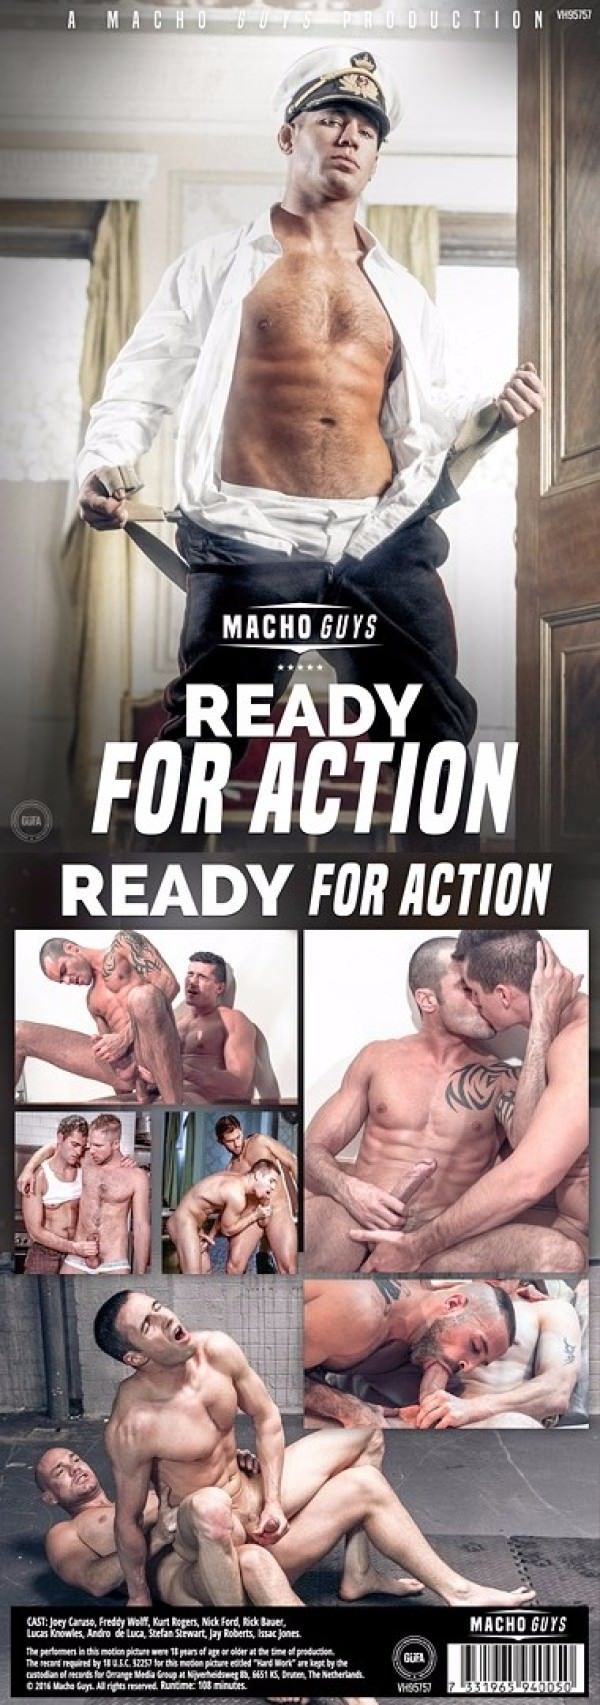 MachoGuys Ready For Action DVD